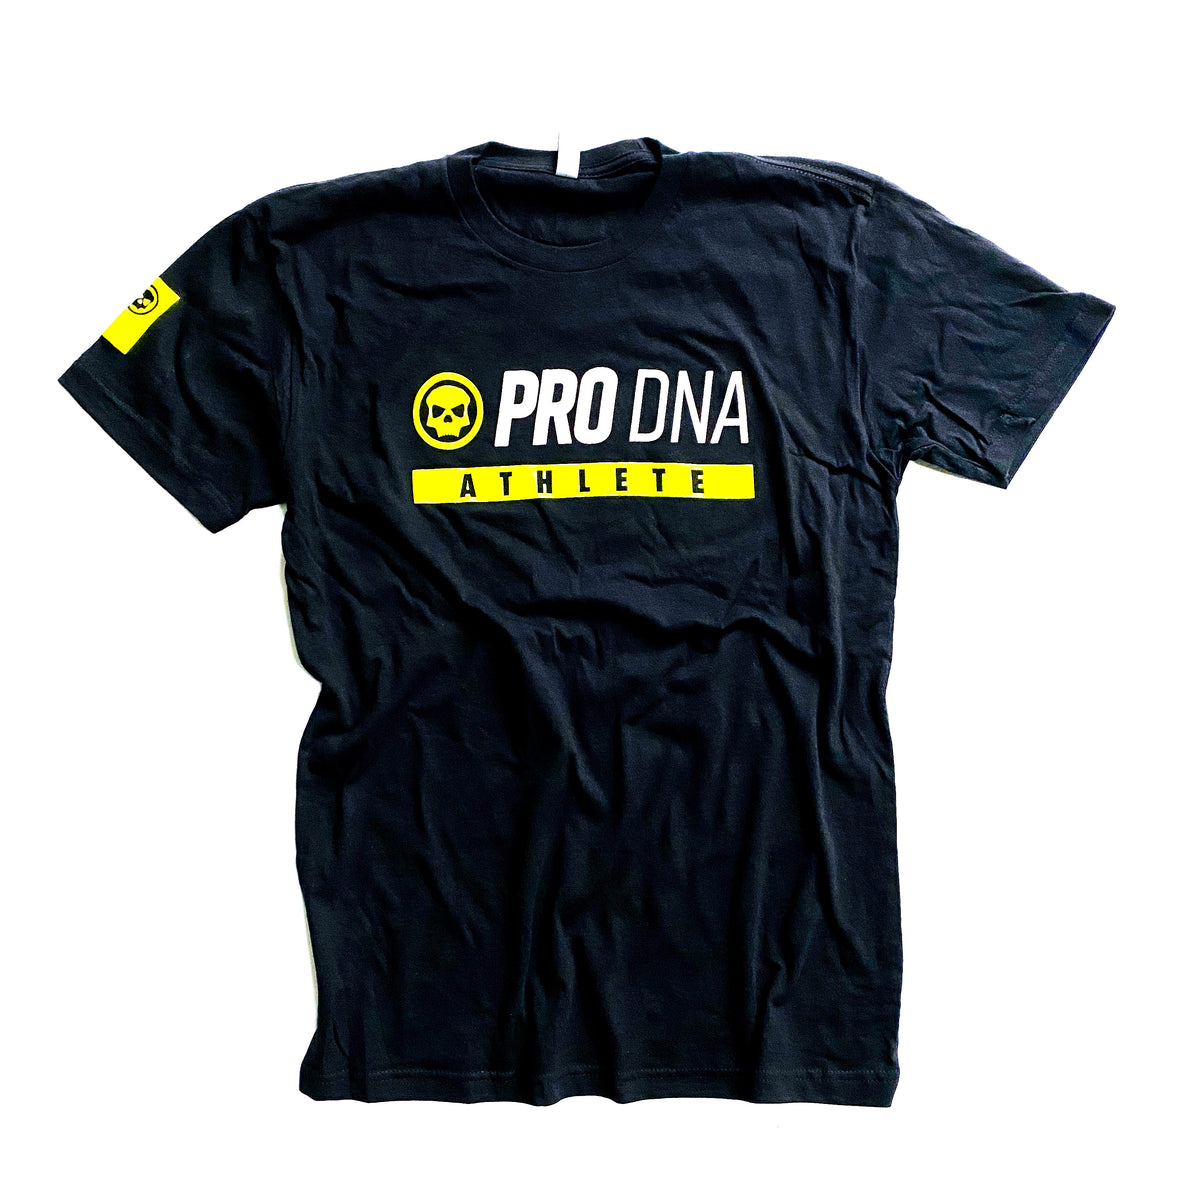 Infamous Pro DNA T-Shirt New!